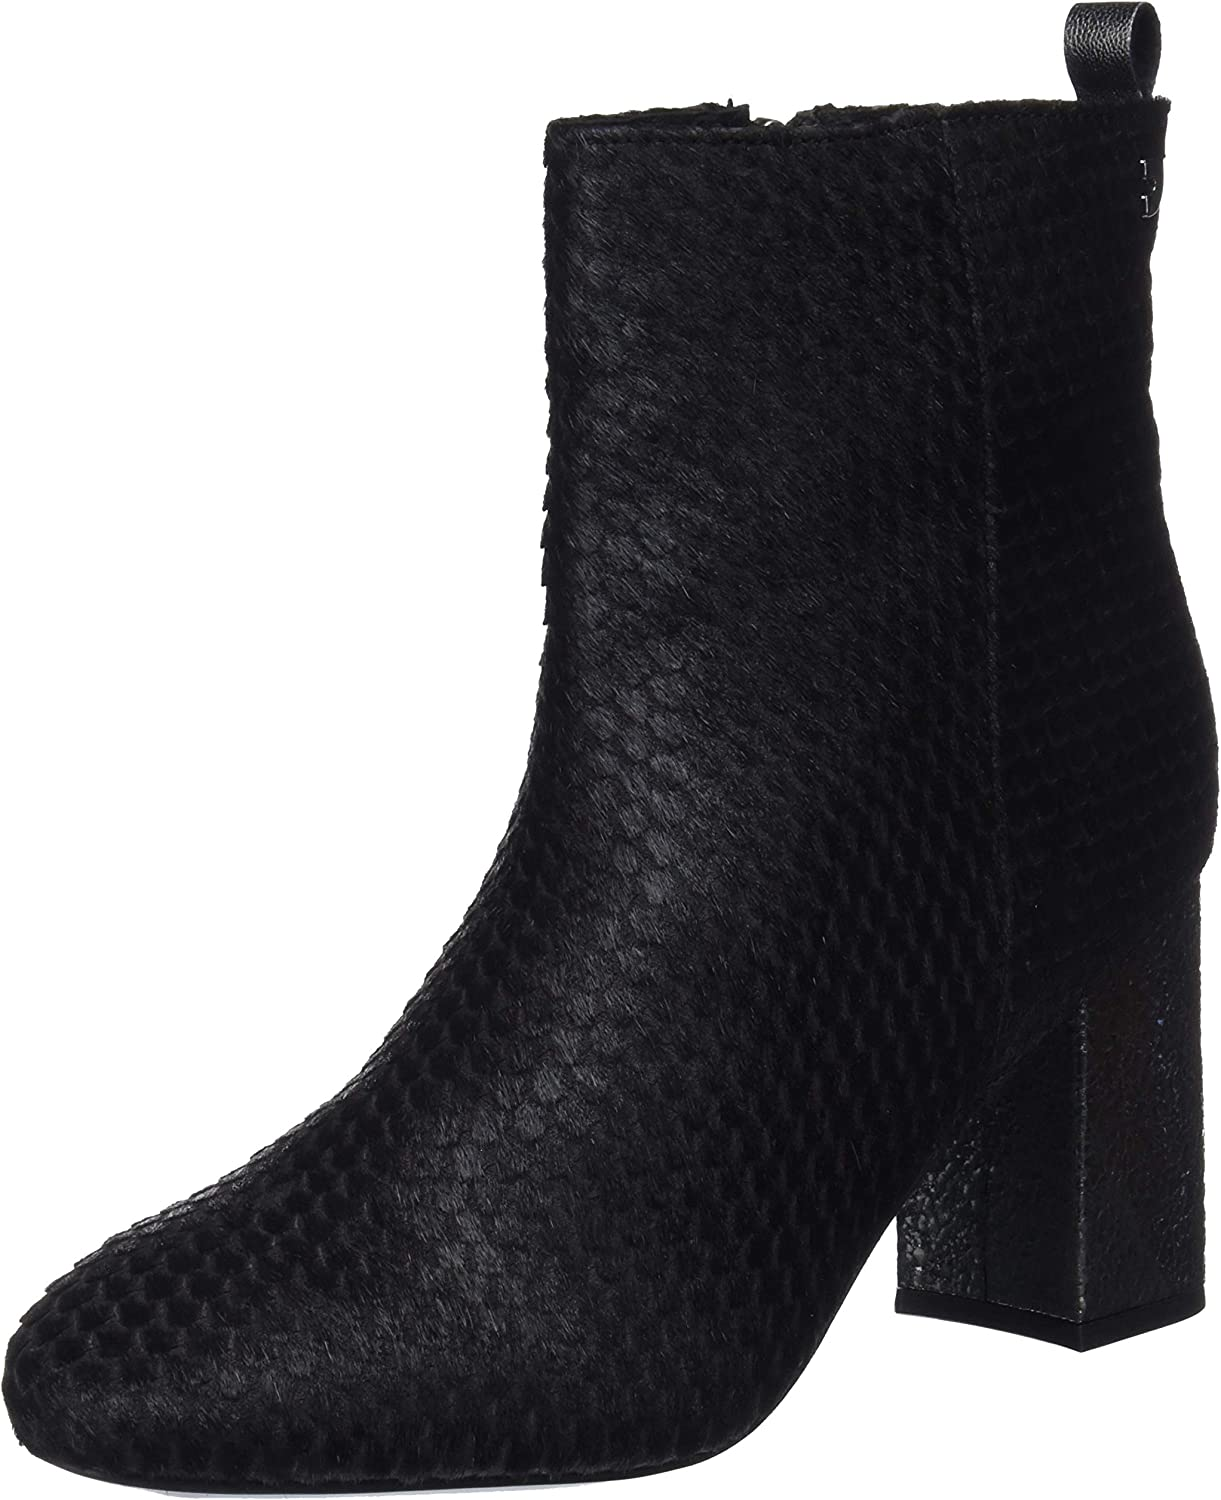 GIOSEPPO shoes Woman Ankle Boots 46237 Medium Heel Zipper